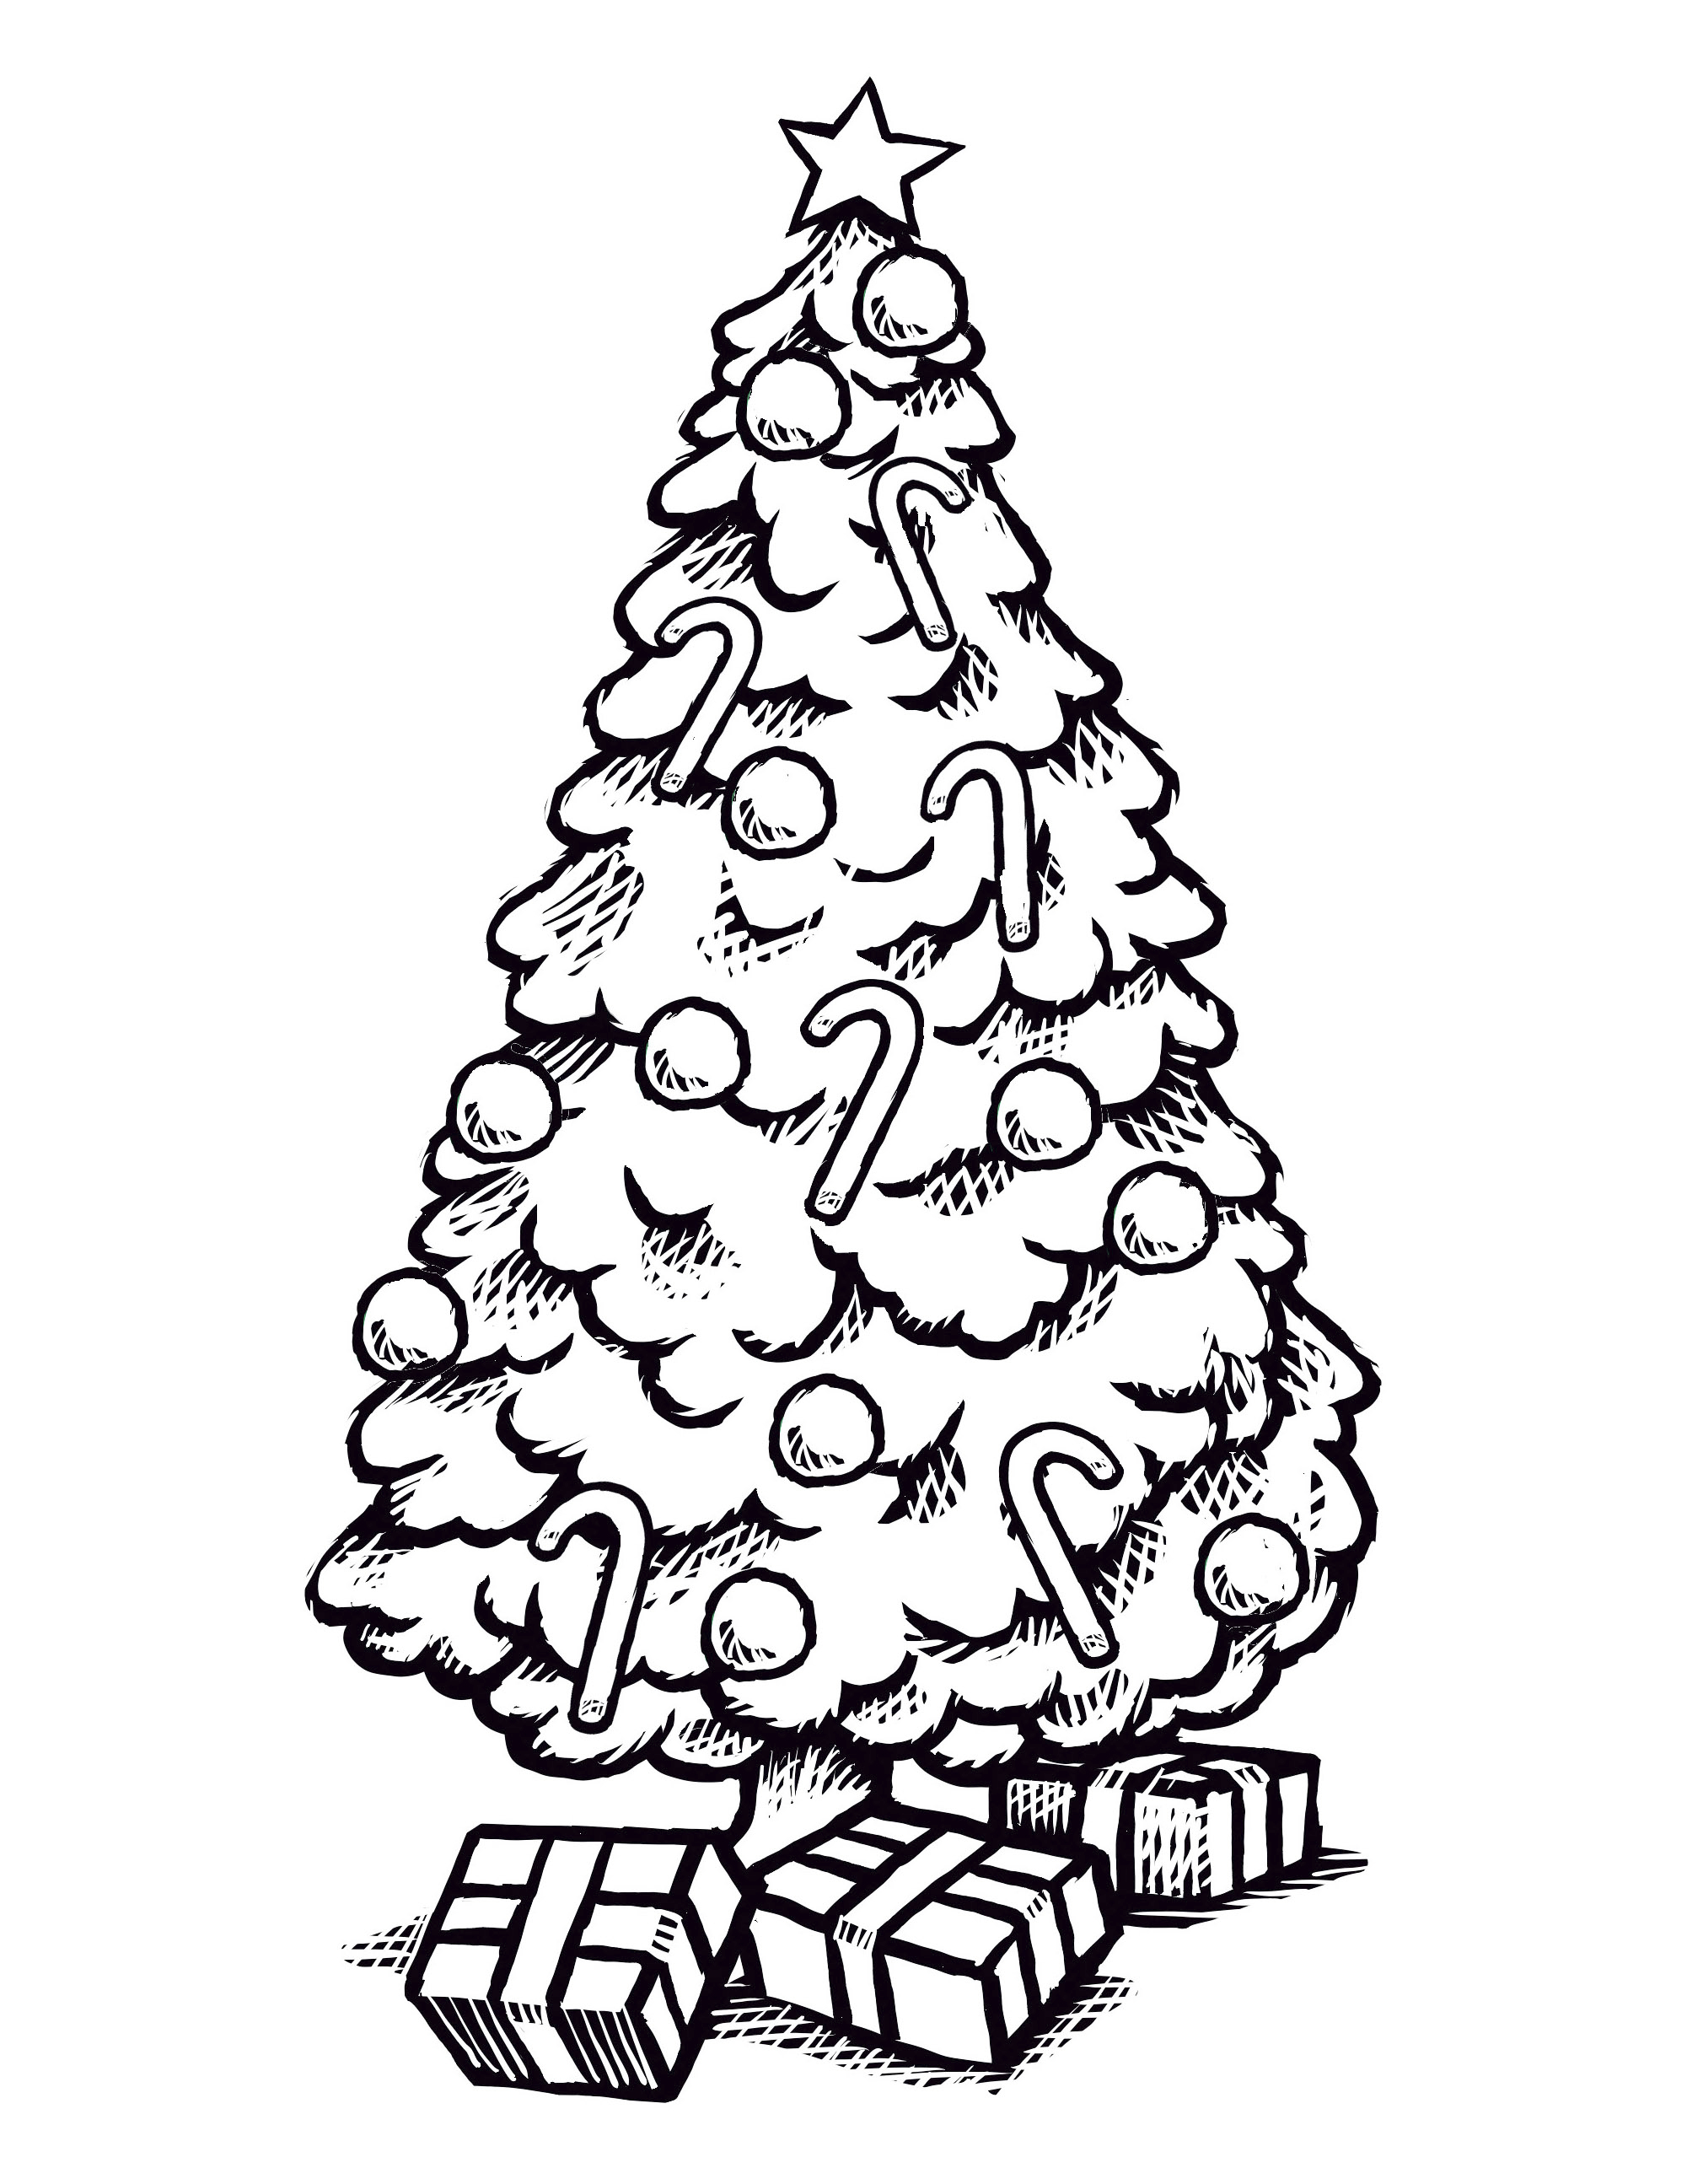 A coloring page of a Christmas tree and gifts.